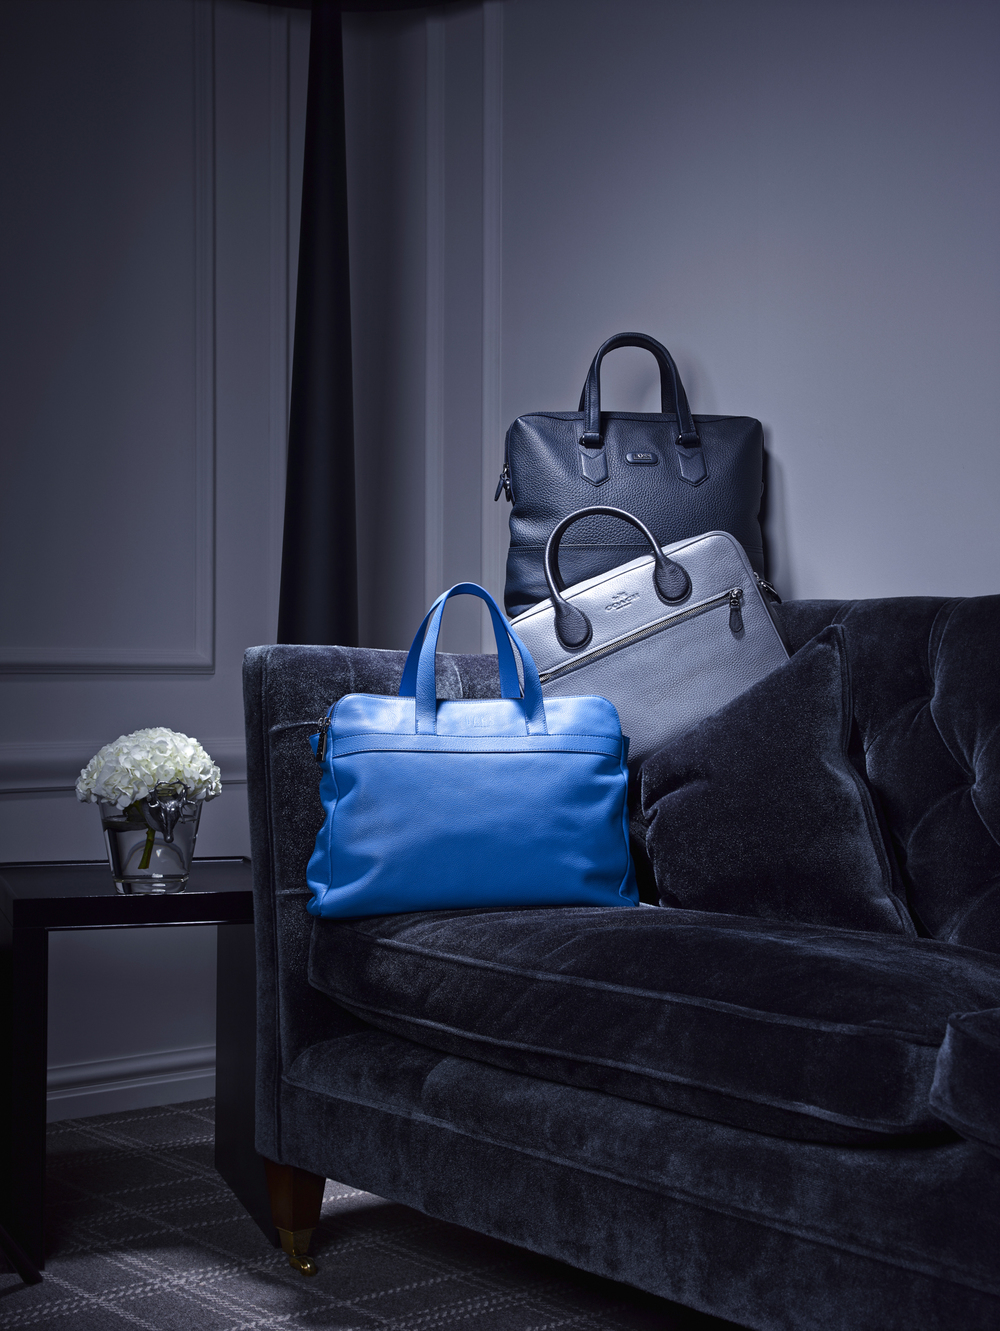 Lux Luggage 4-2.jpg